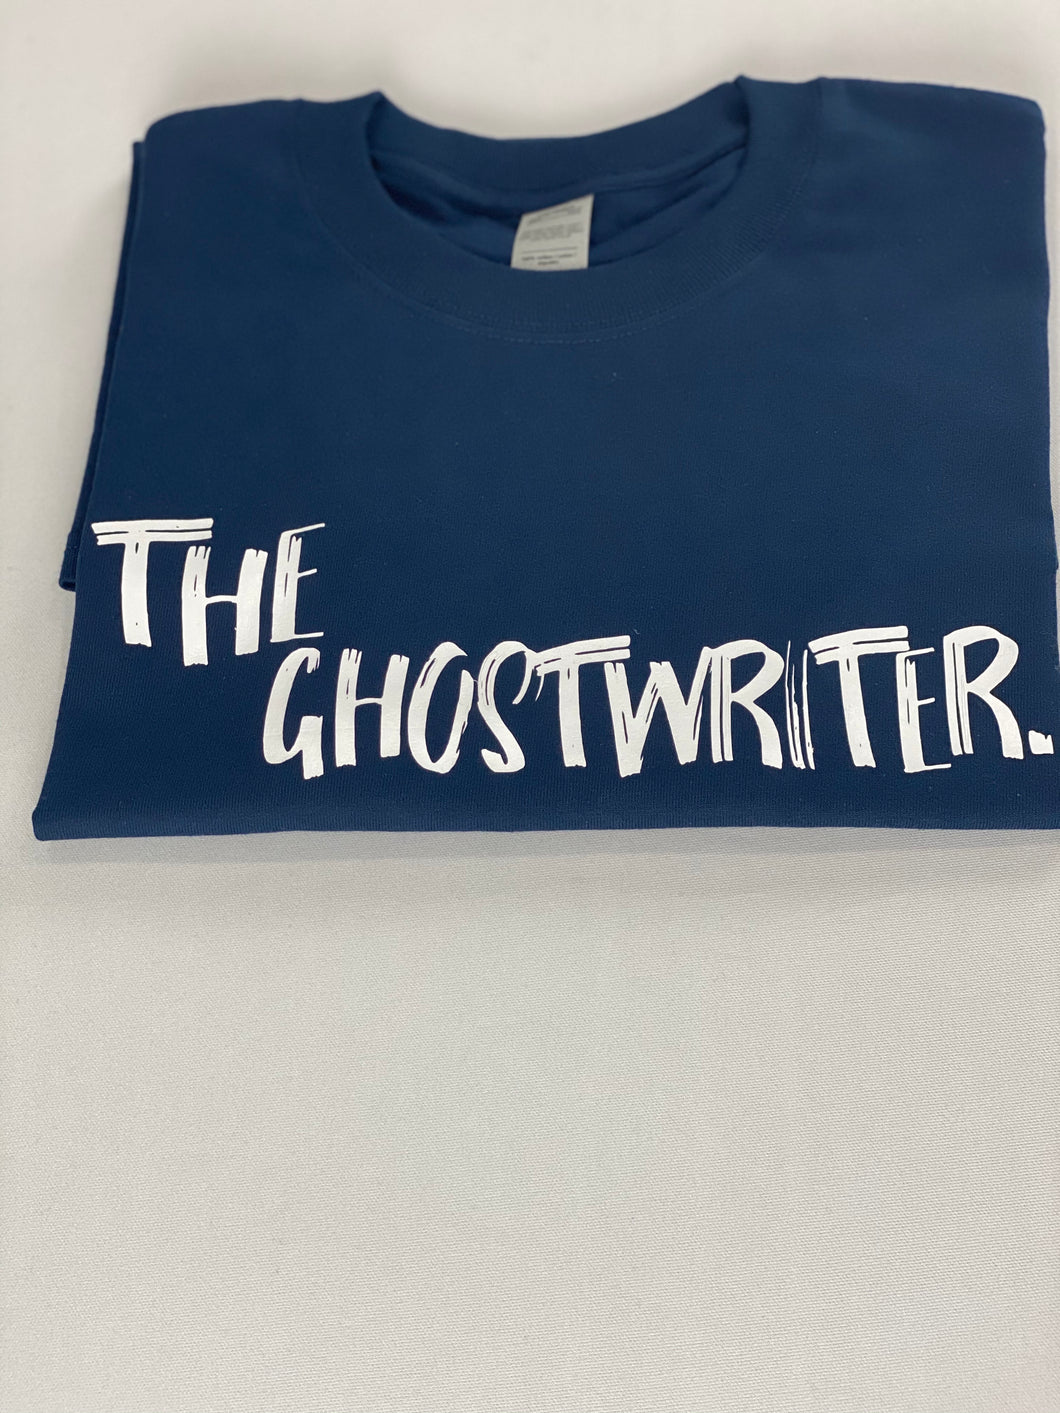 FAMILY STORY -- Ghostwriter of the Story